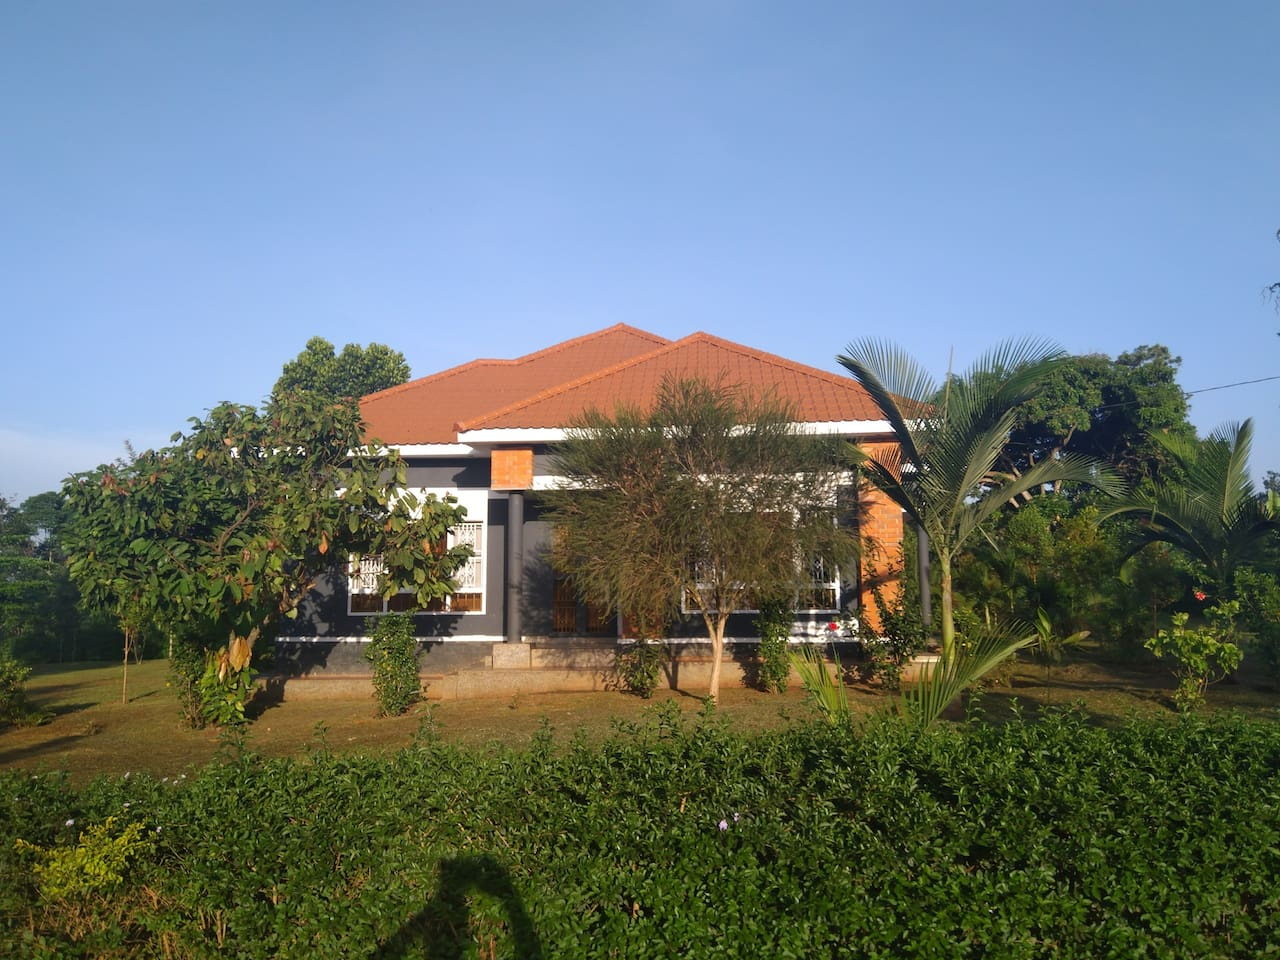 Front view of the house facing sunrise